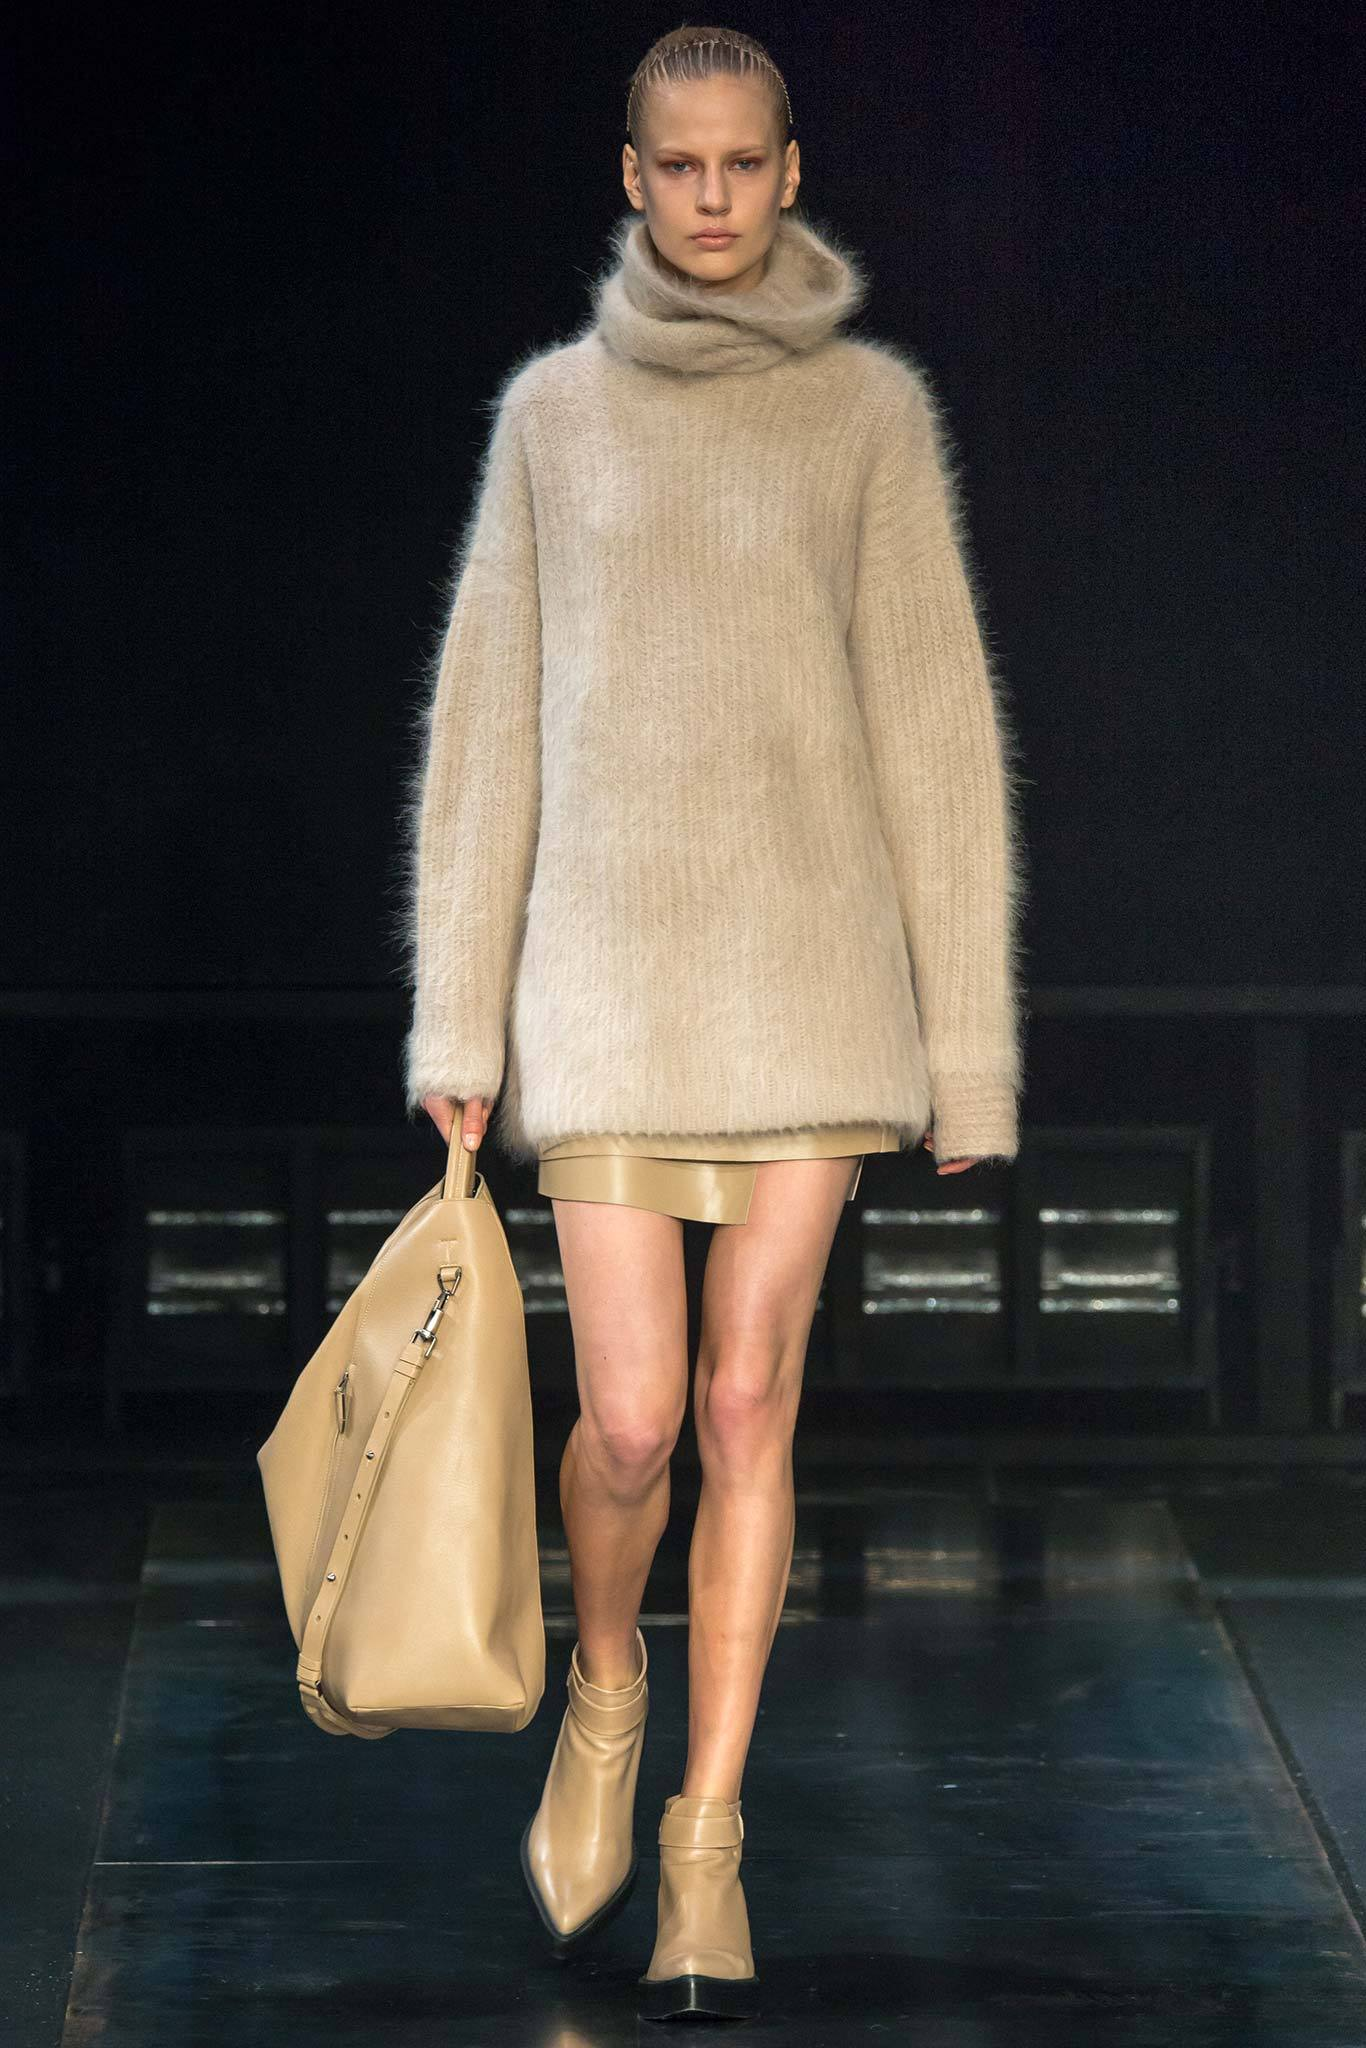 StyleAndMinimalism | Collection Best Bits | What To Wear From AW14 | Helmut Lang AW14 | Beige Oversize Mohair Roll Neck Jumper, Short Wrap Beige Caramel Leather Skirt